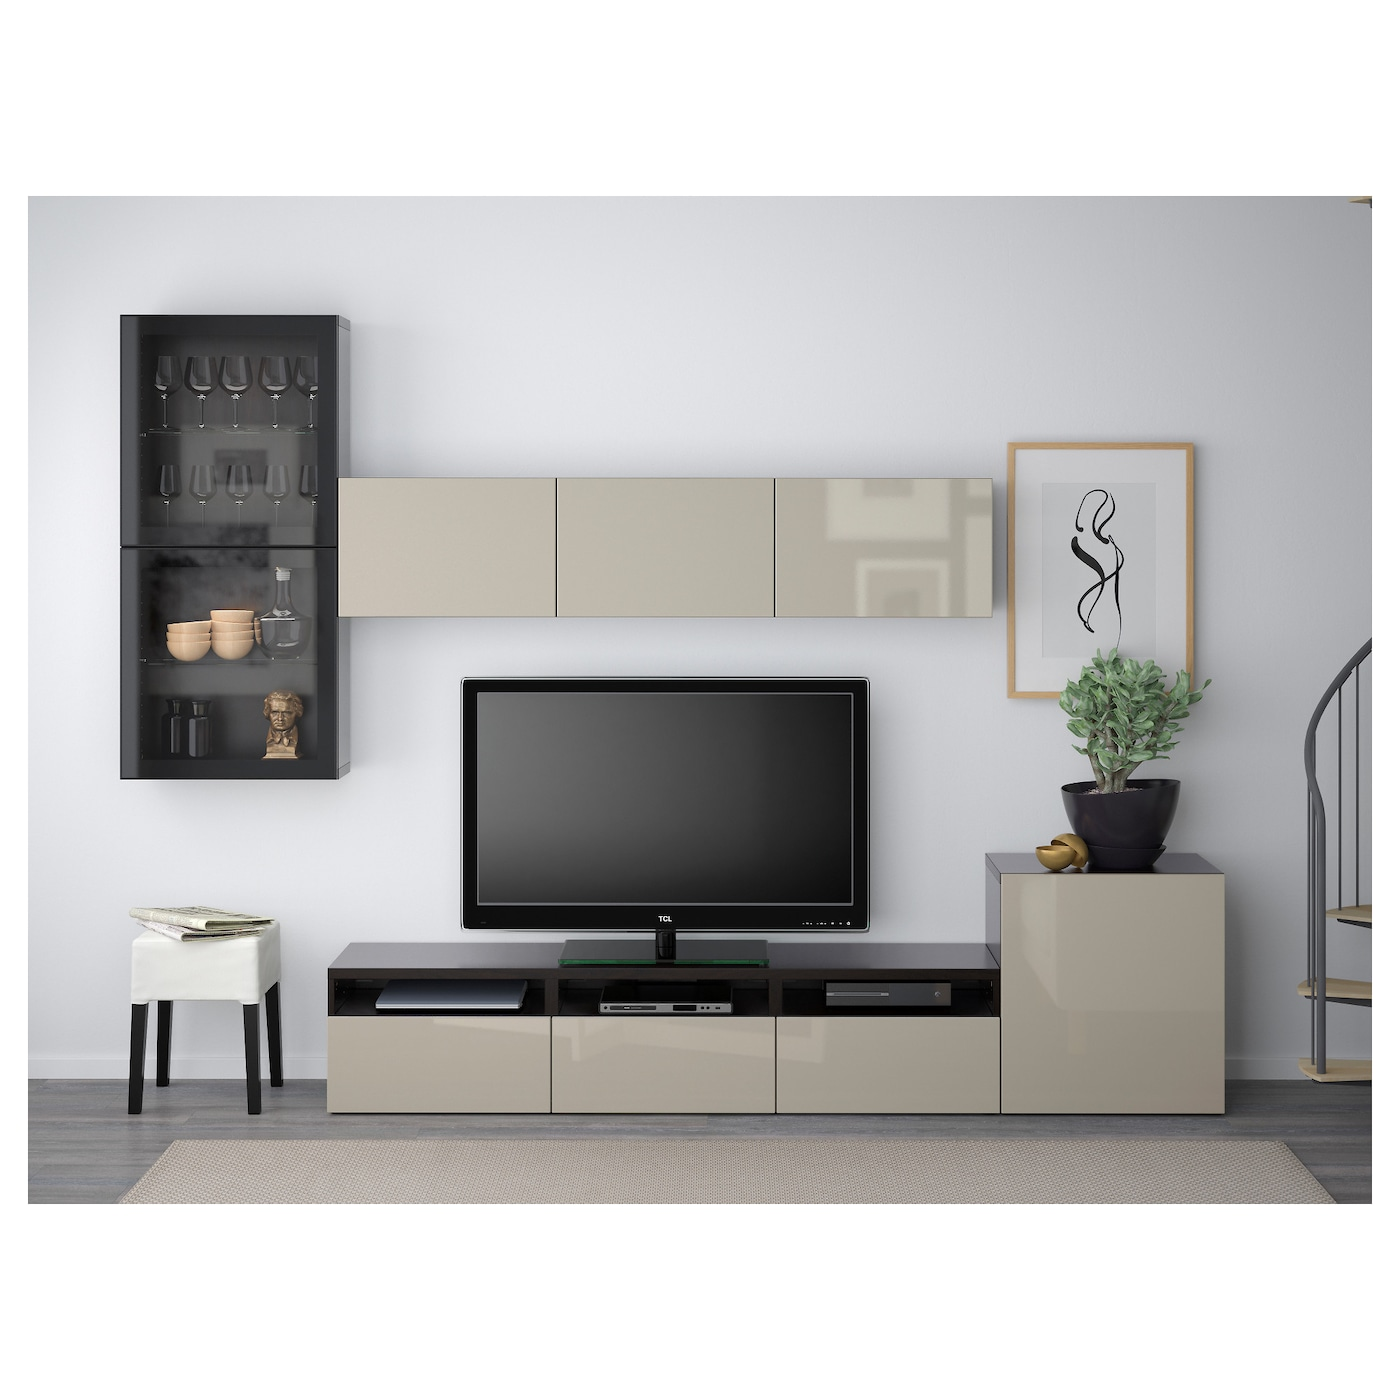 Ikea Besta Units Photos Home Decoration Gallery Bgwebs Net 17  # Meuble Cache Tv Ikea